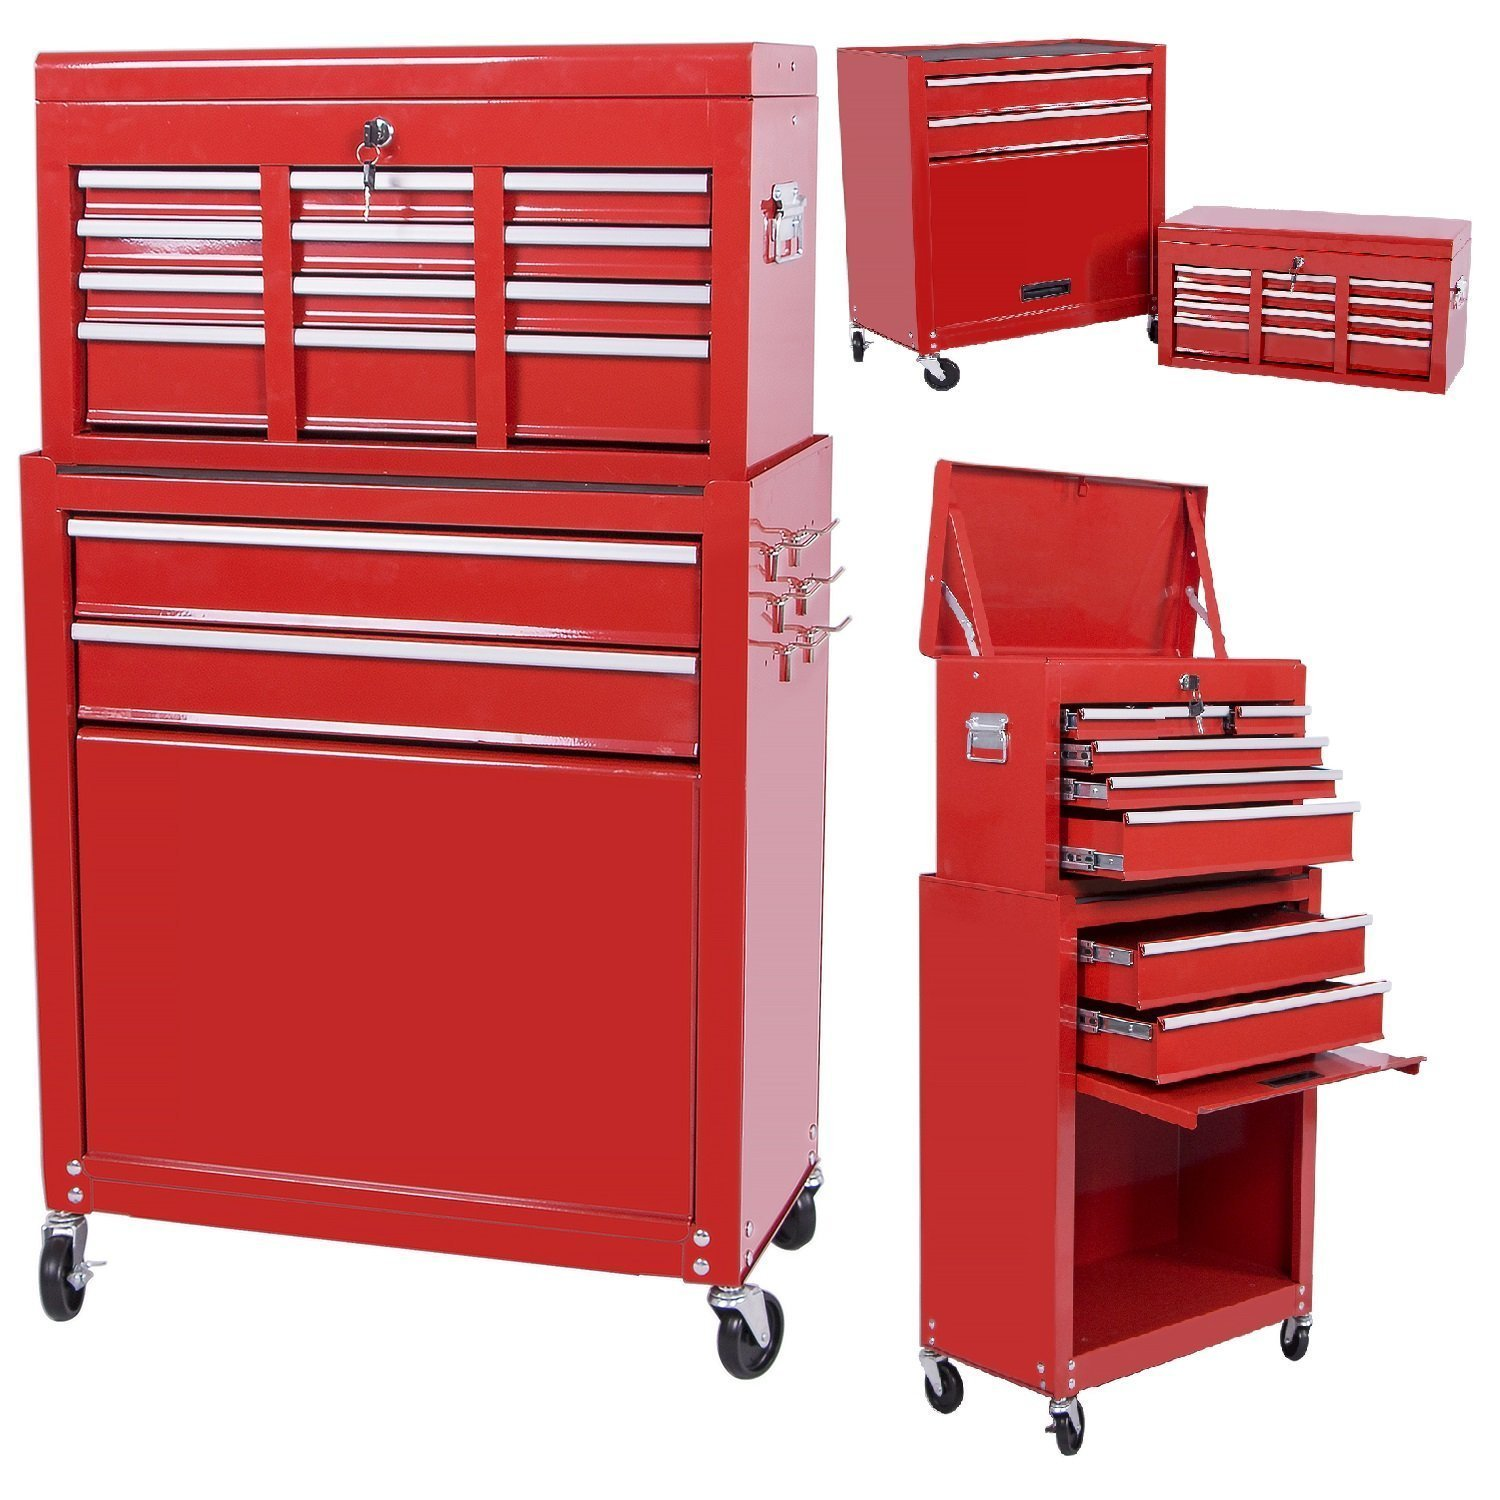 Handyman Heavy Duty Steel Toolbox with Chests and Roller Cabinets 4 Wheel Casters (Red)